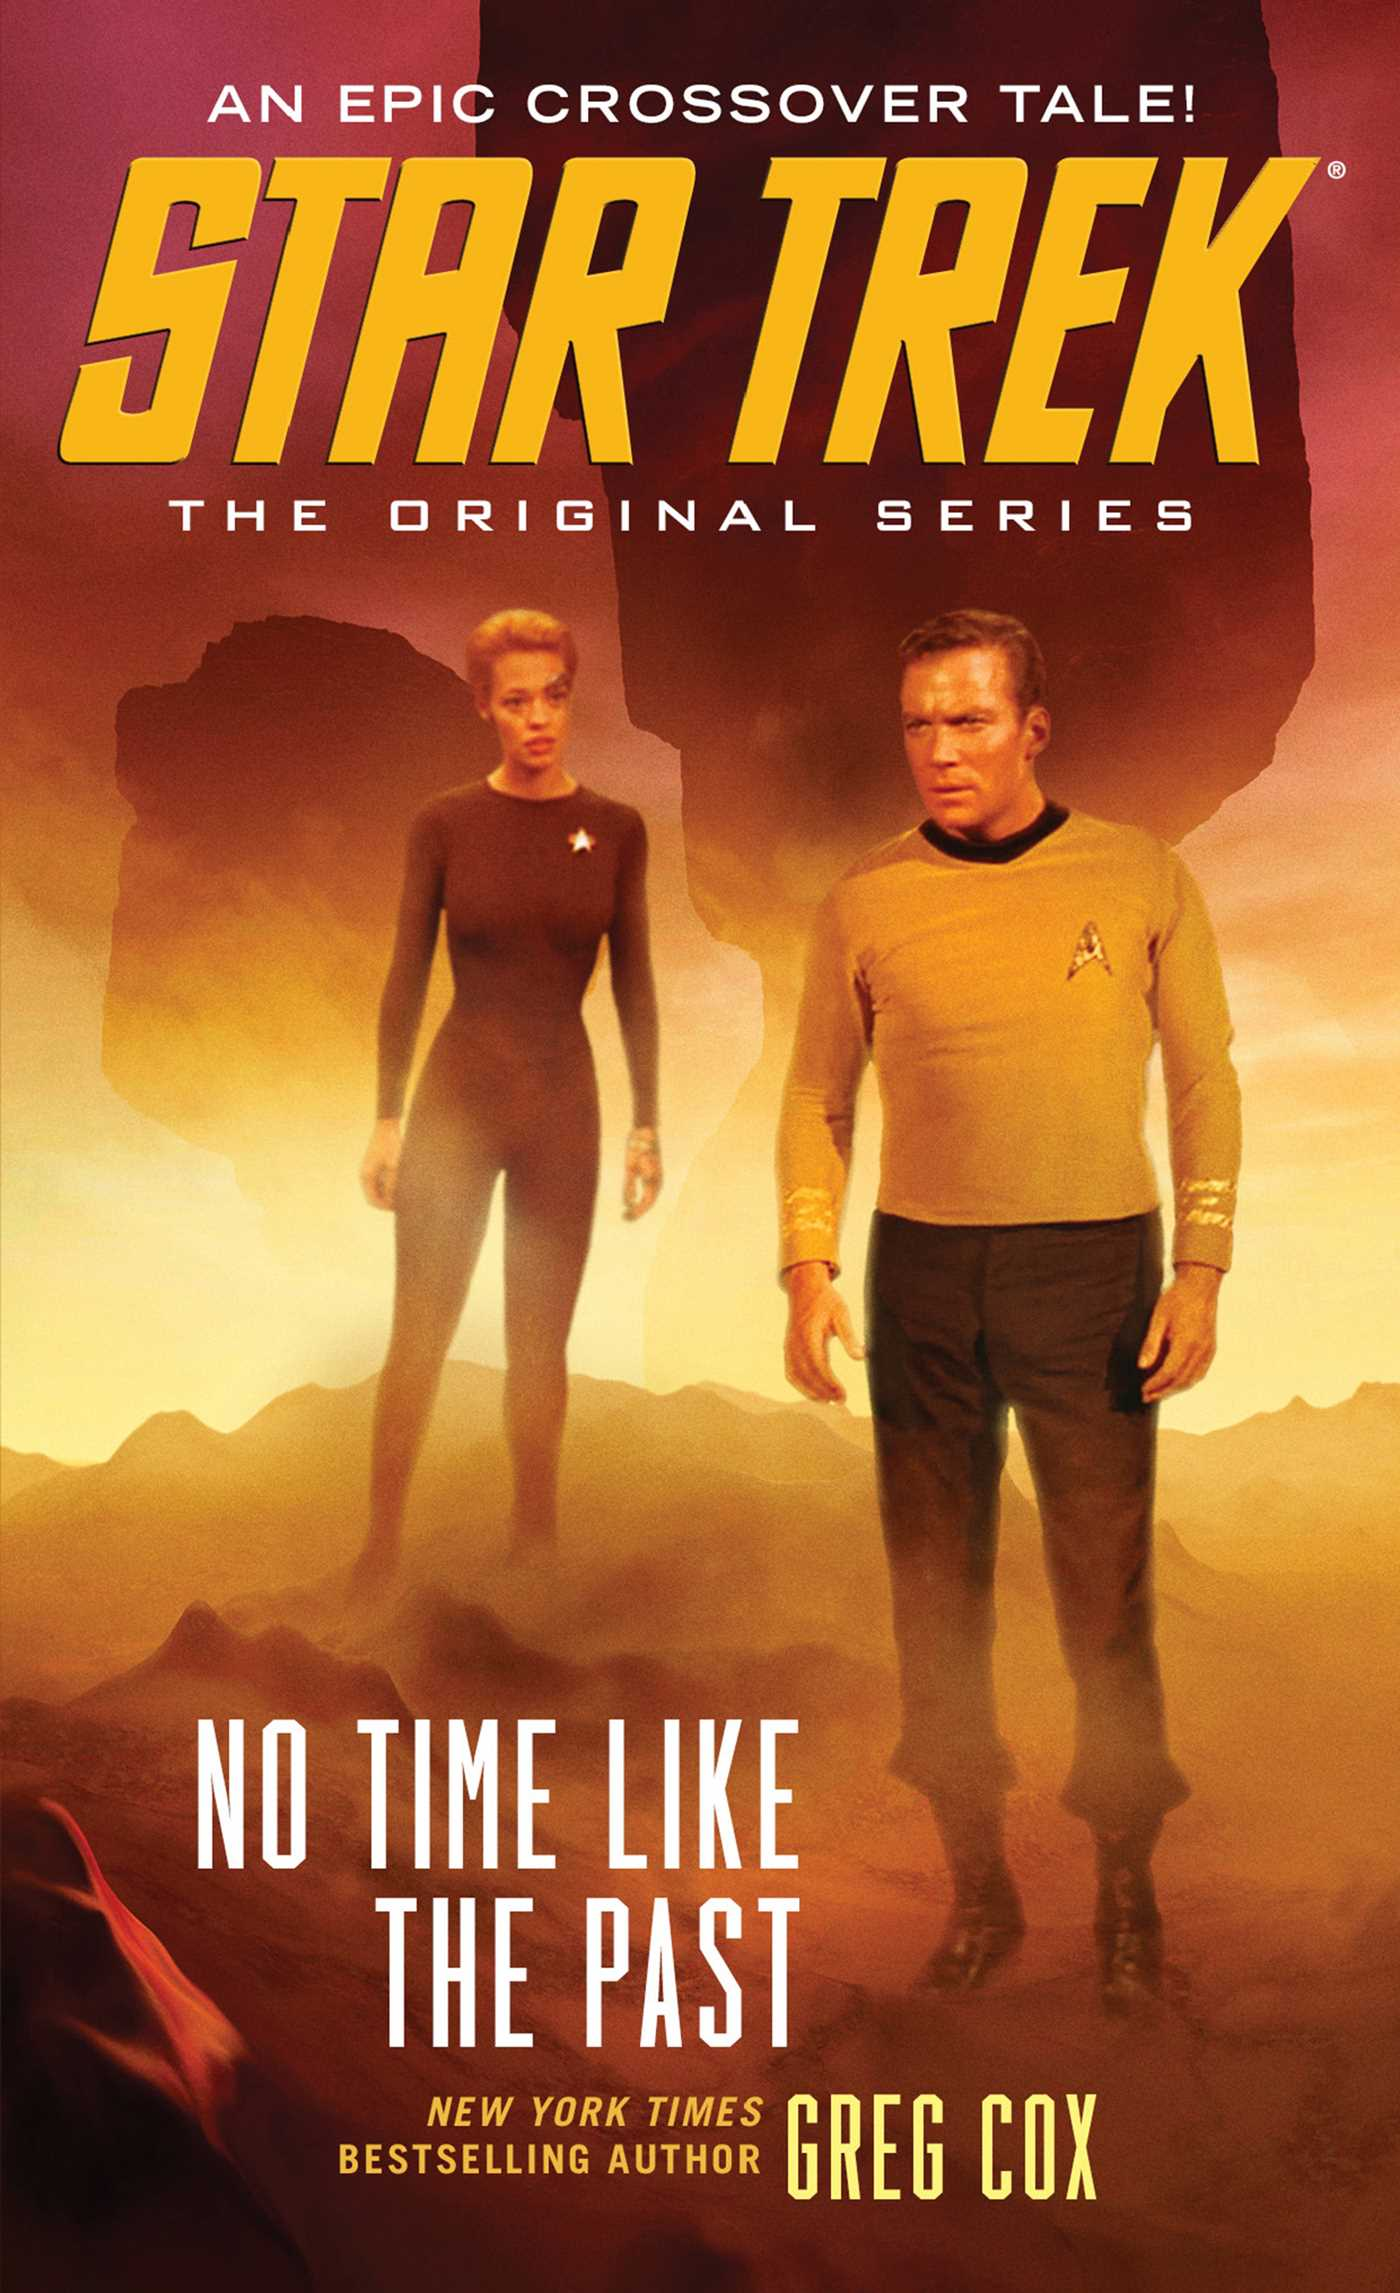 Star-trek-the-original-series-no-time-like-the-past-9781476749501_hr